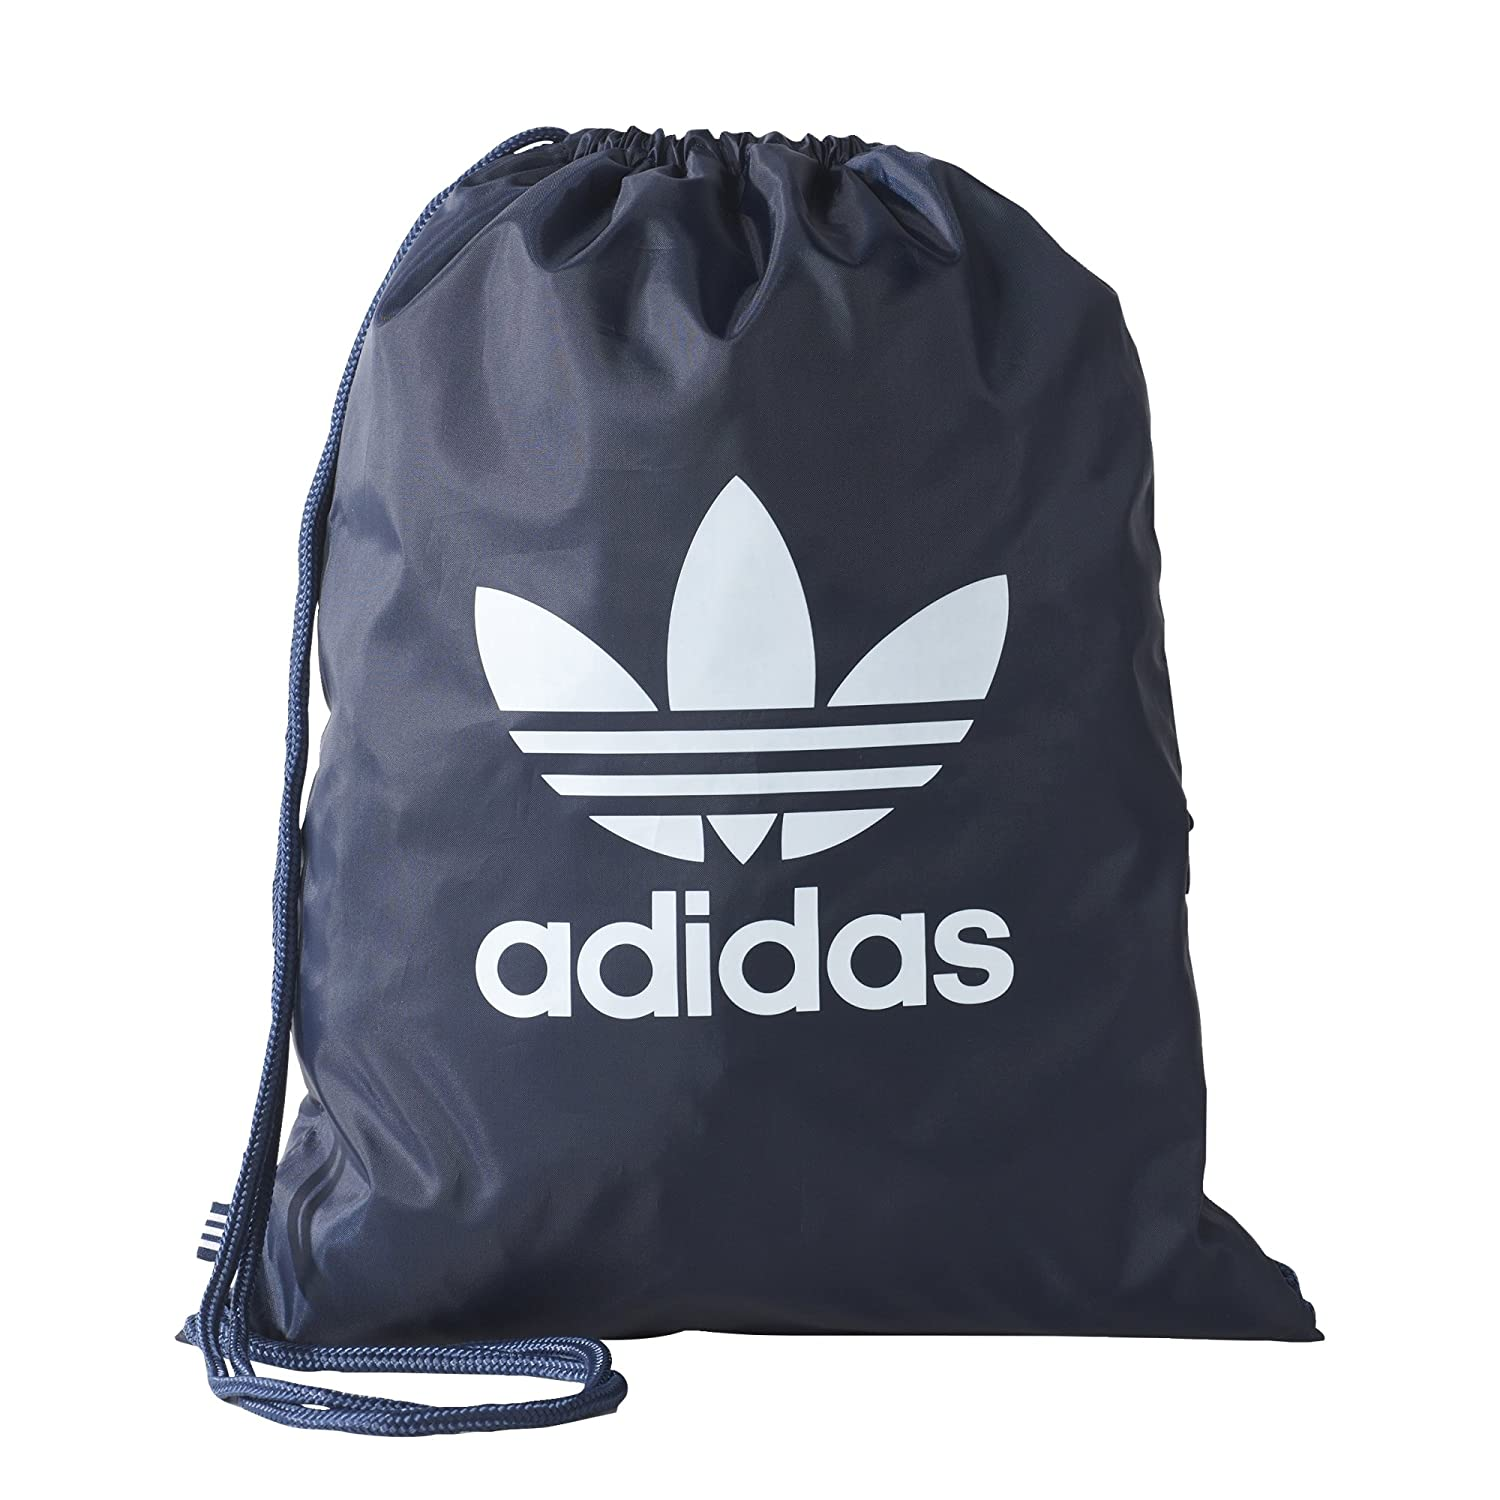 adidas Originals womens standard Trefoil Gym Sack Black No Size BK6726